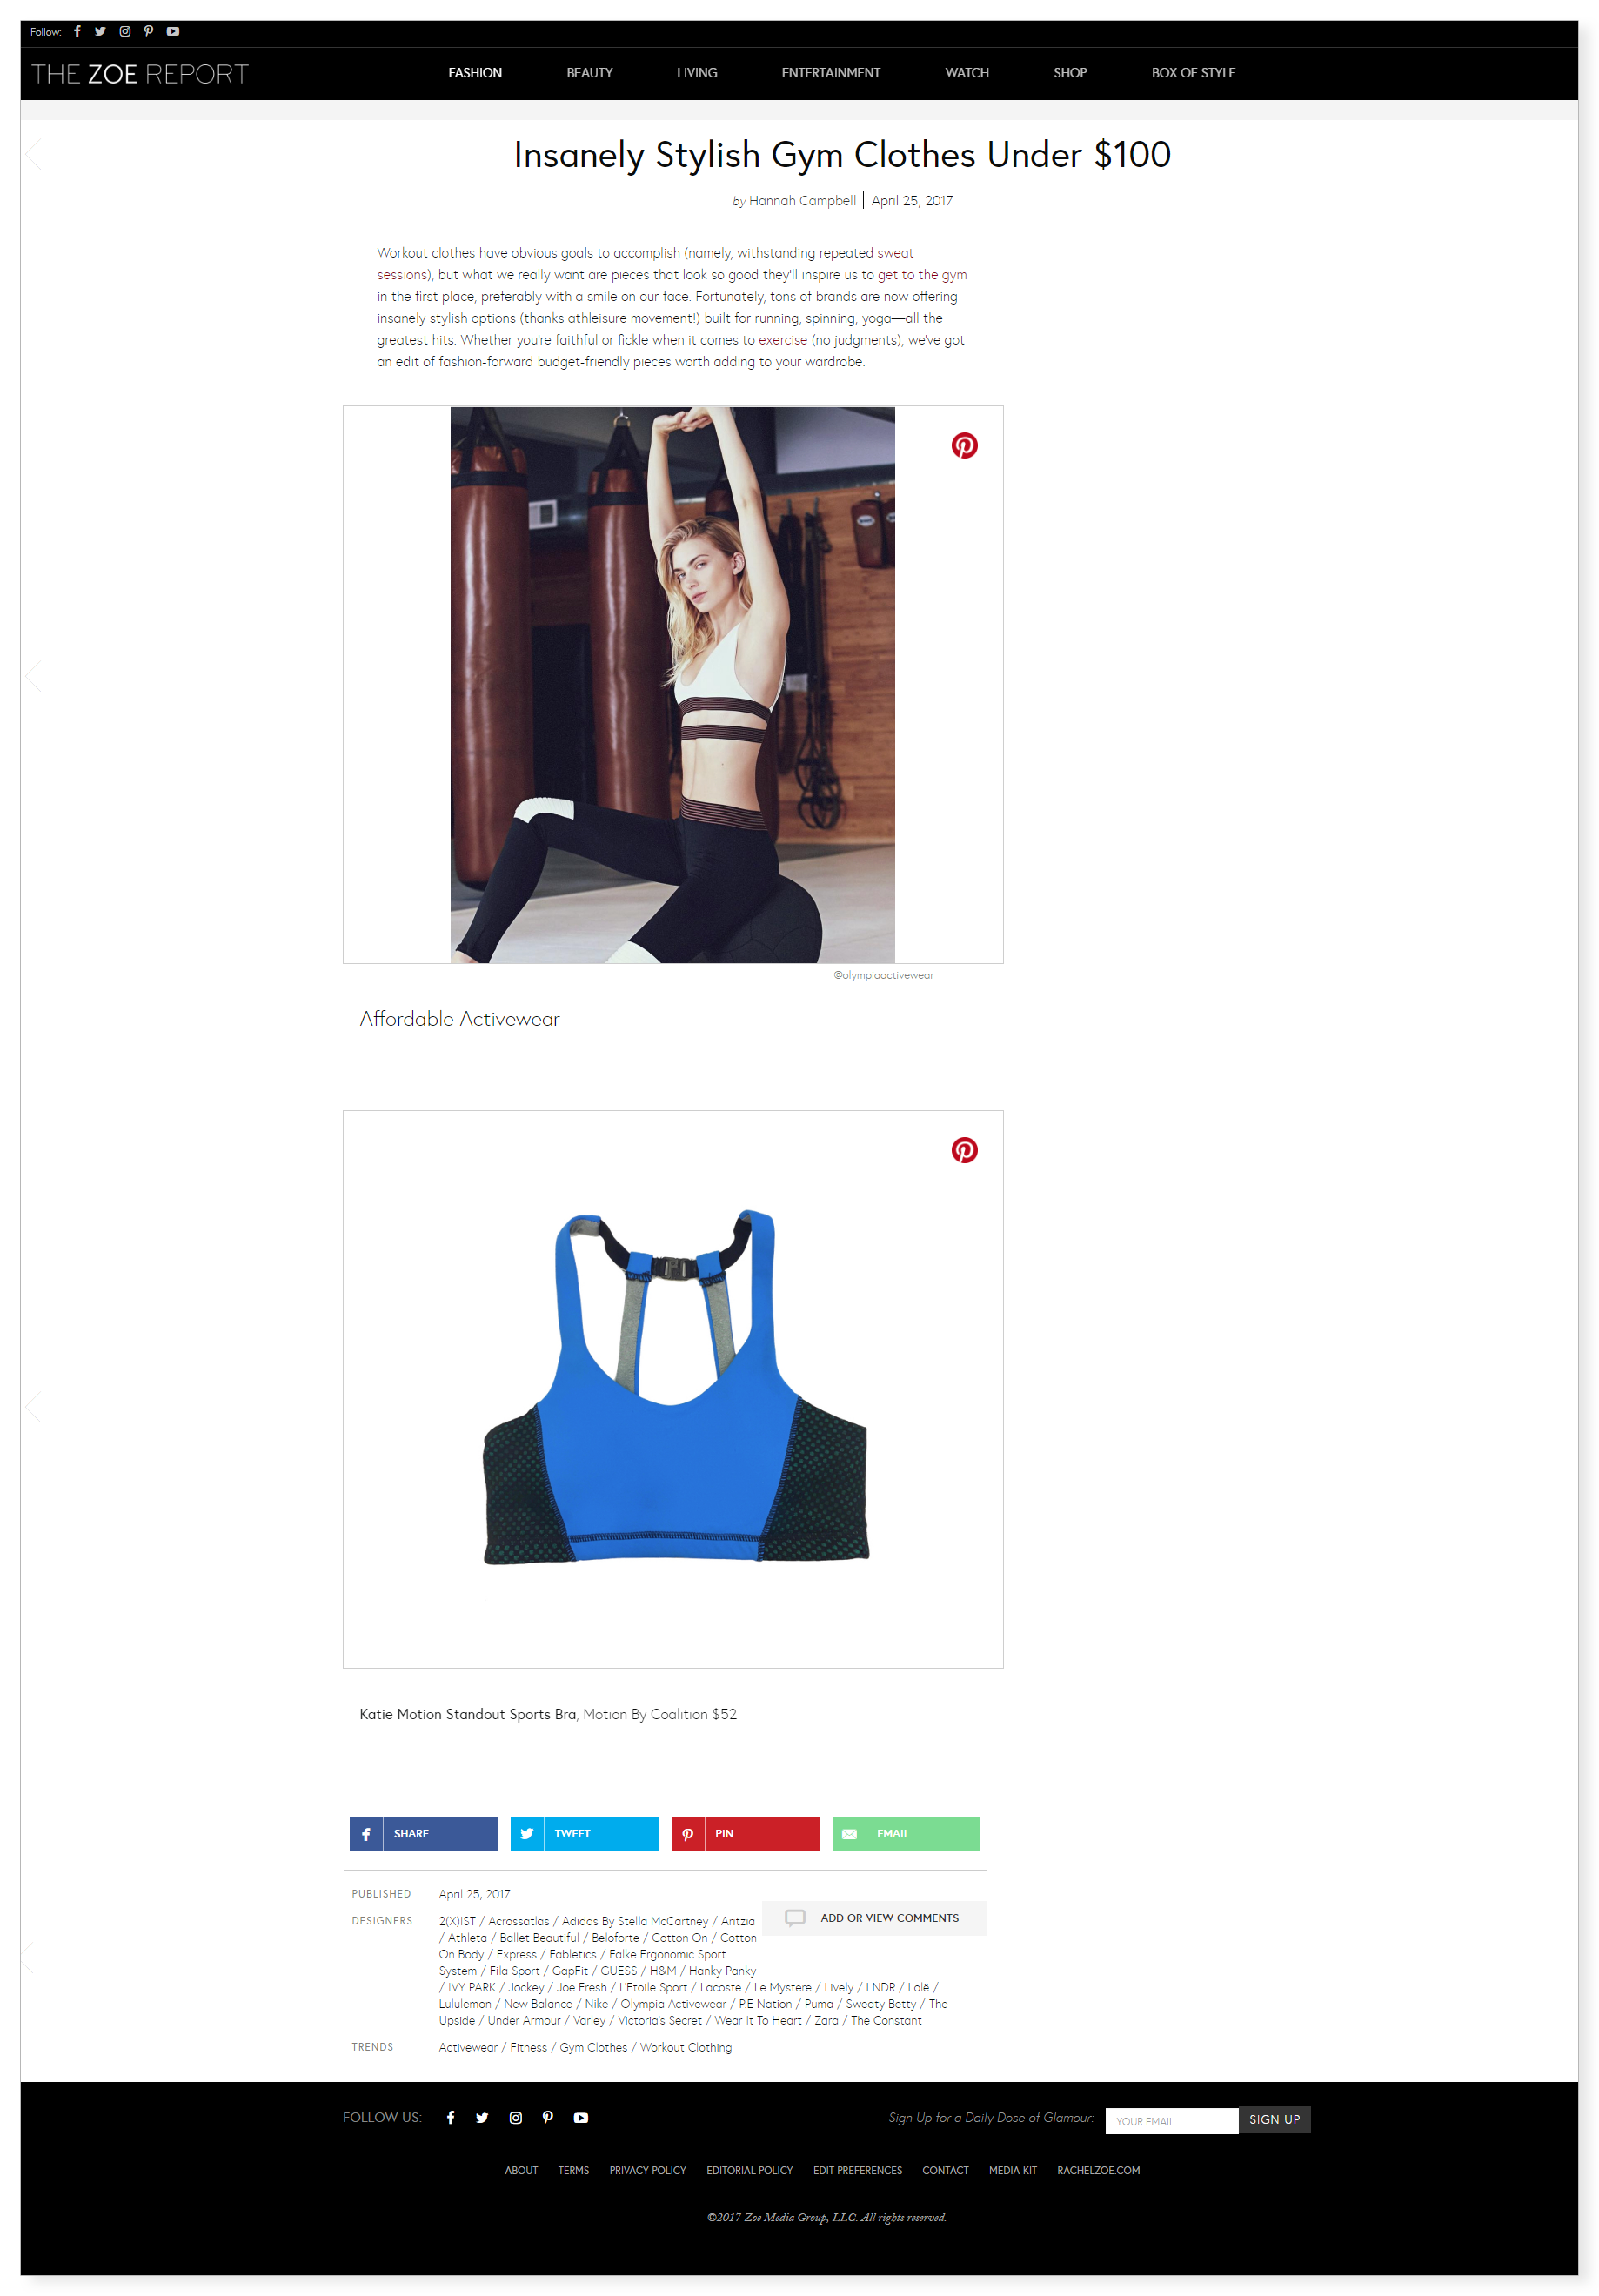 Motion by Coalition activewear The Zoe Report